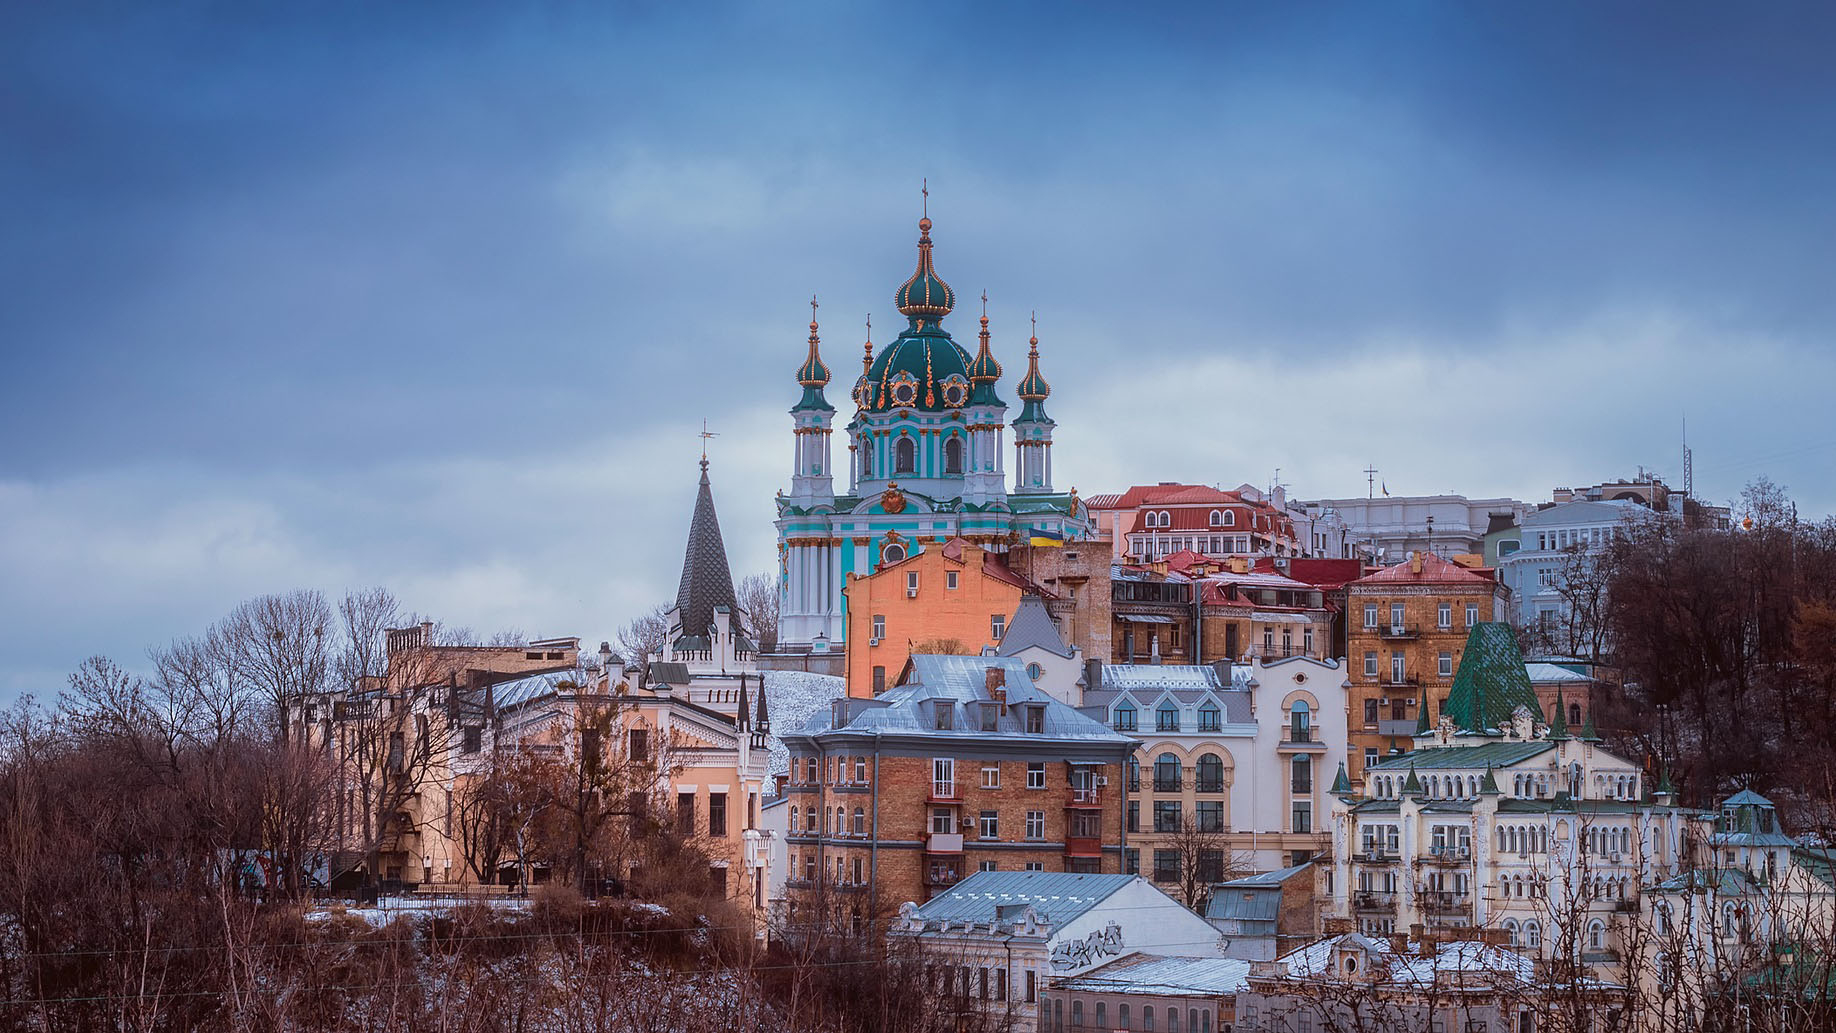 St. Andrew's Church among hillside buildings in Kyiv, Ukraine